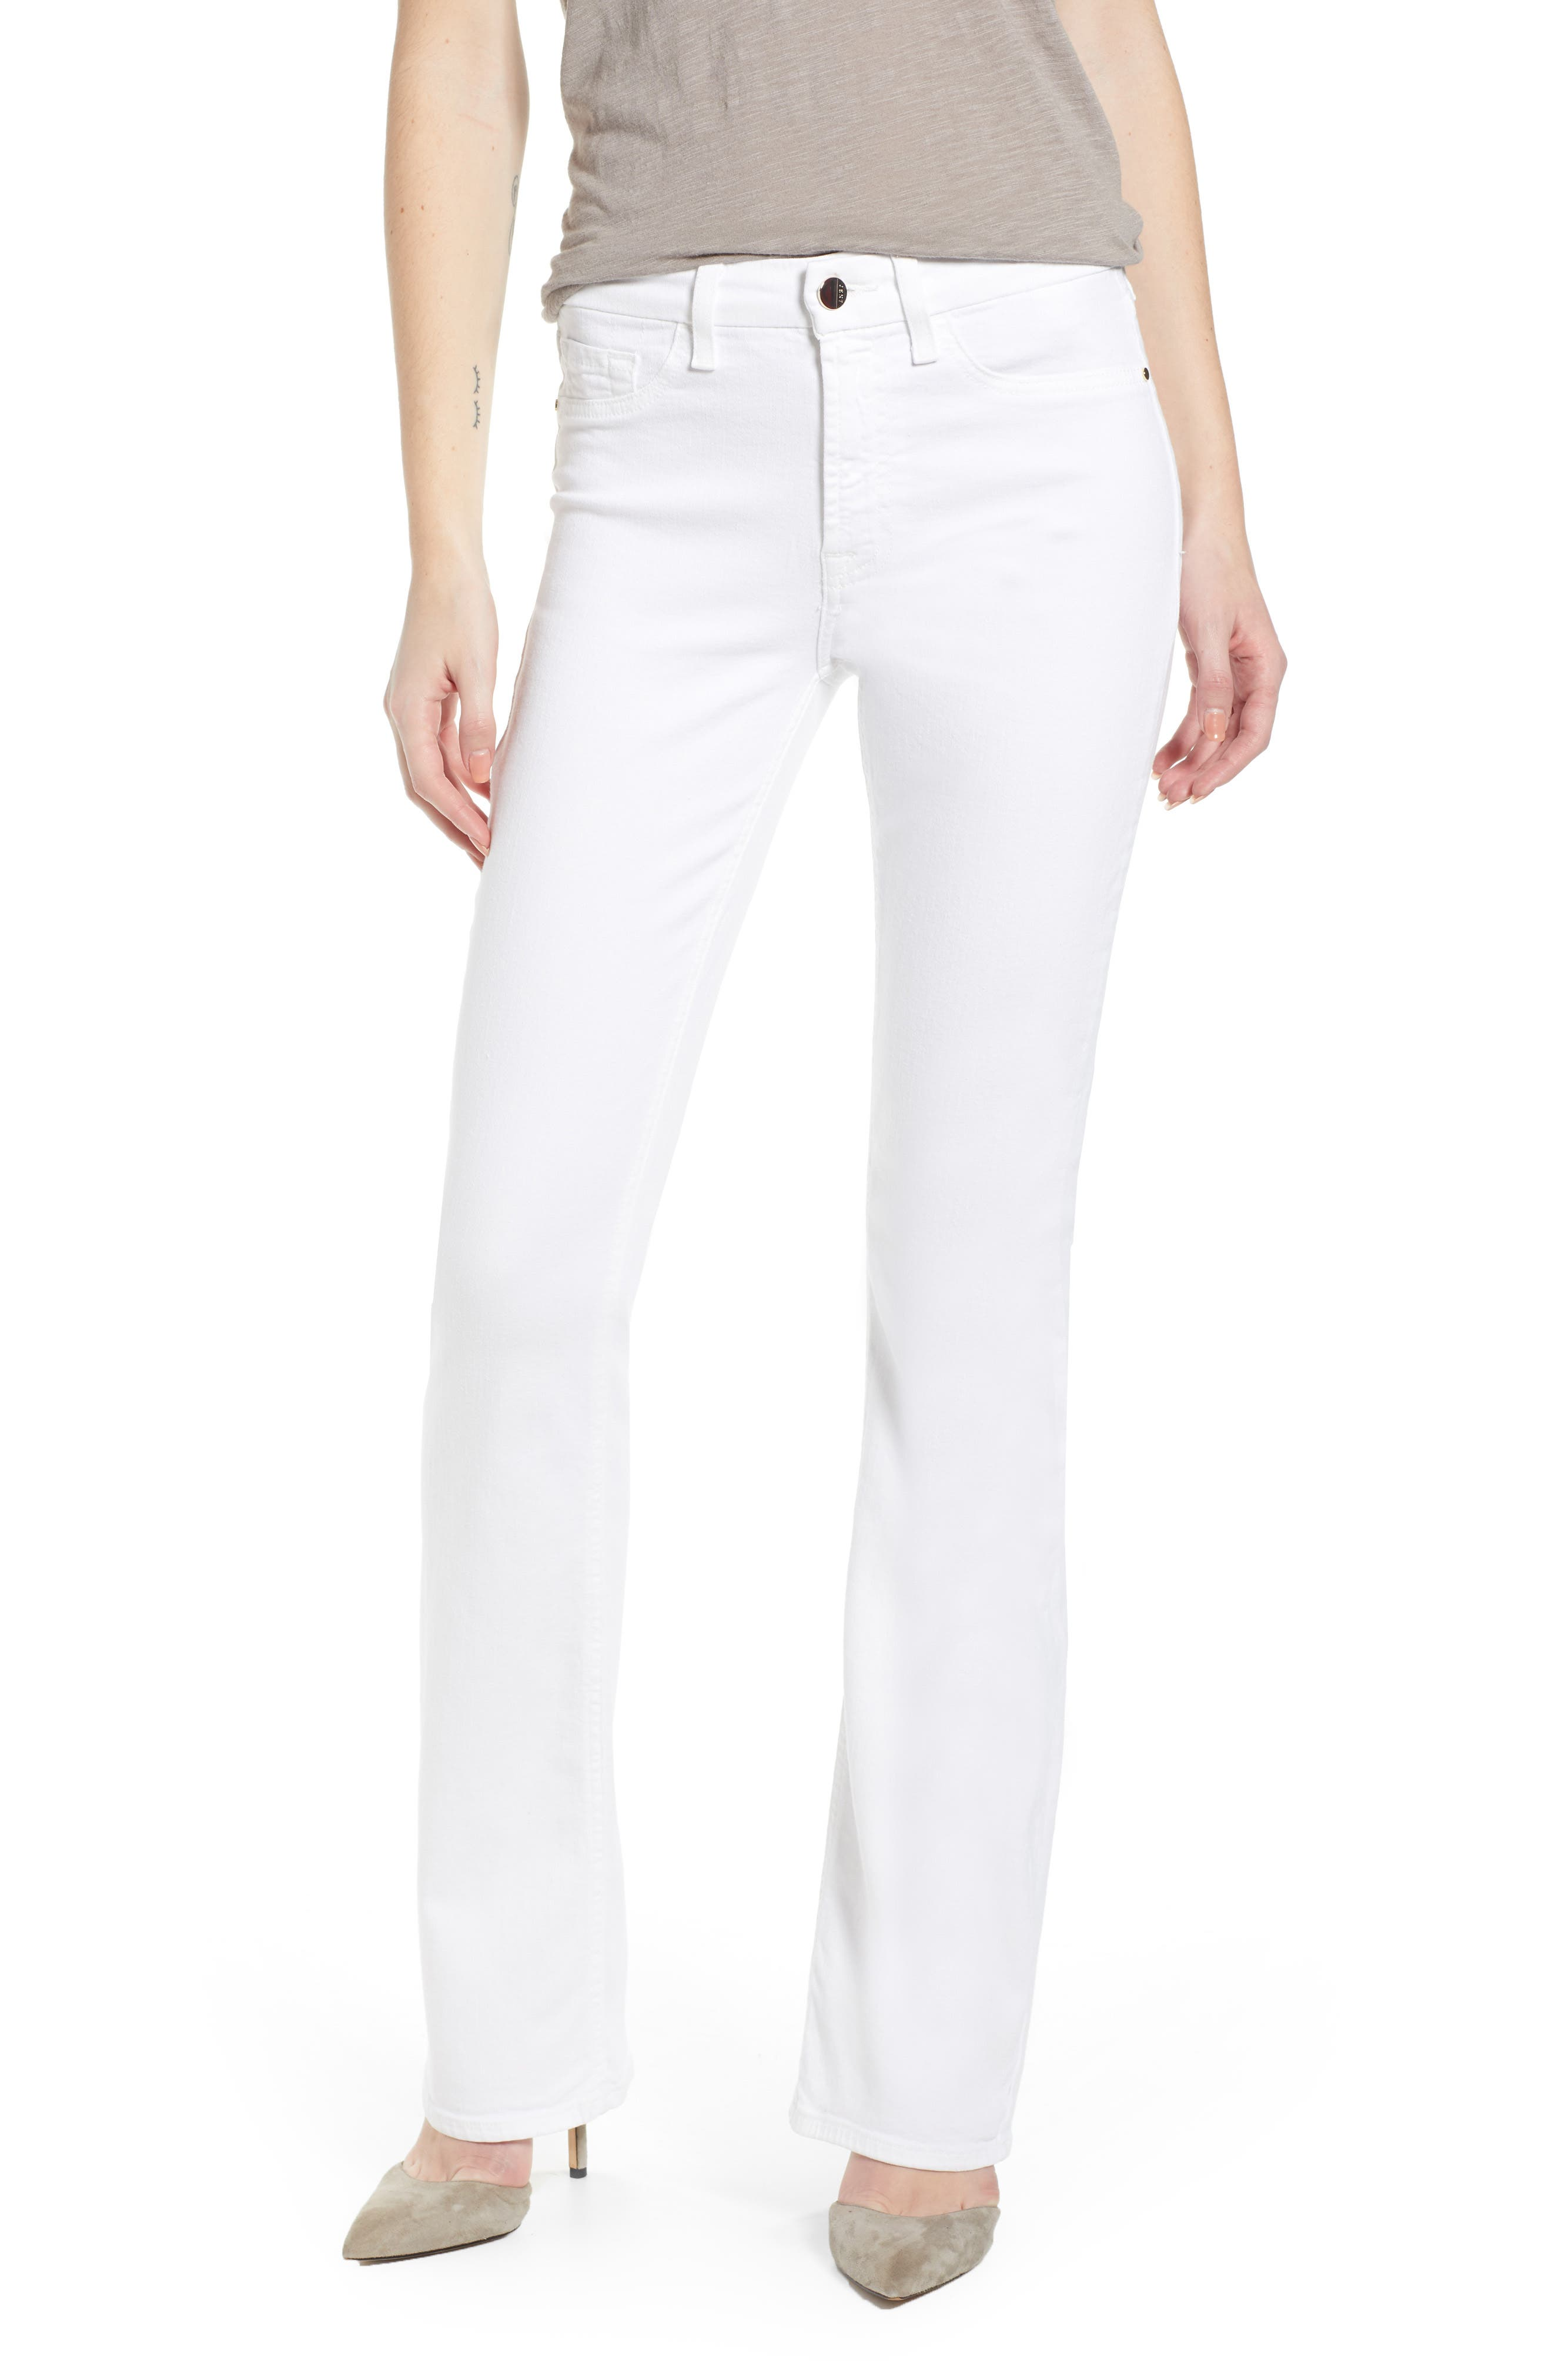 JEN7 BY 7 FOR ALL MANKIND, Slim Bootcut Jeans, Main thumbnail 1, color, WHITE